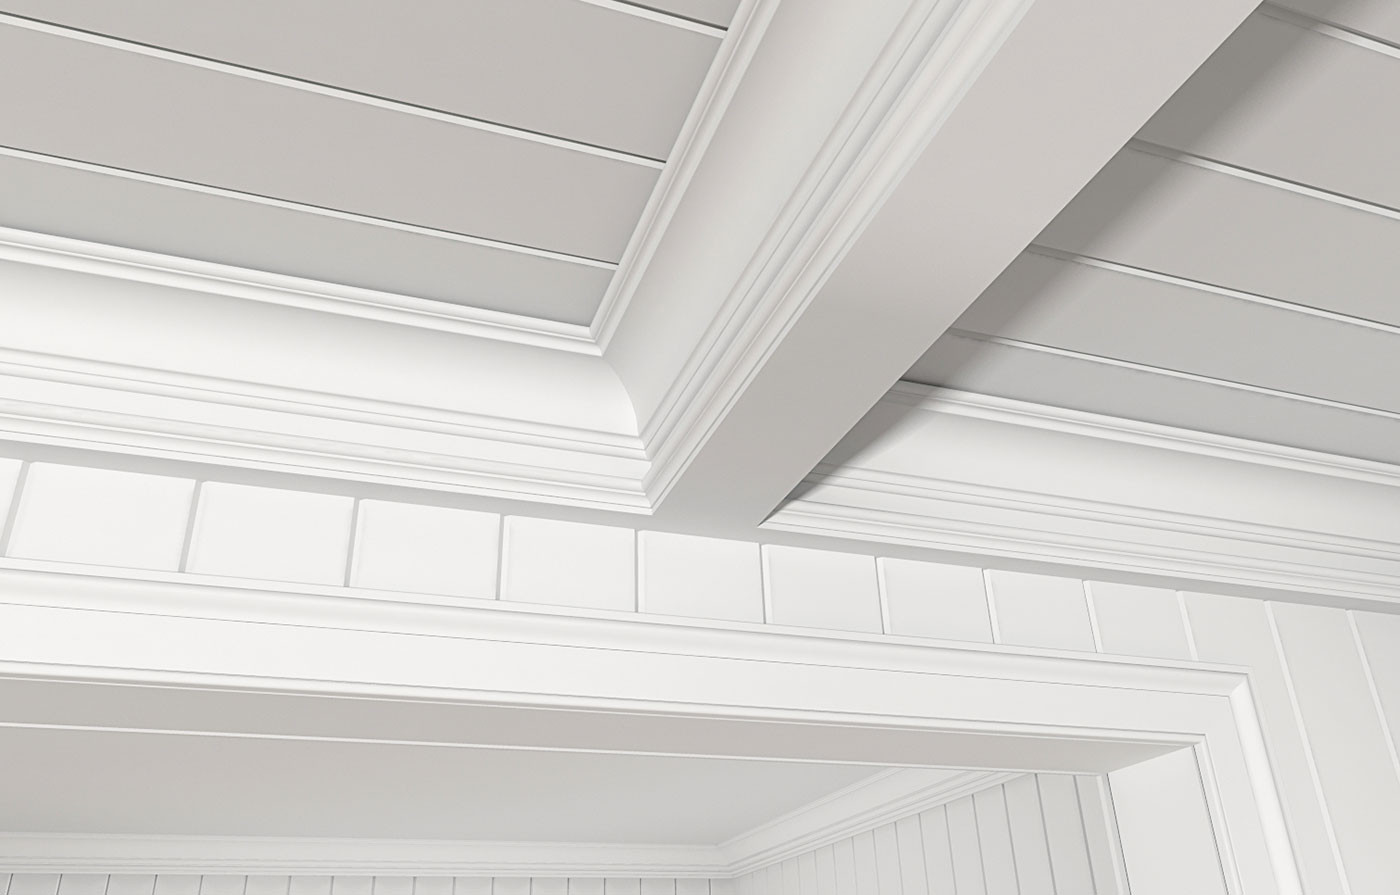 4 Inches On Center V-Groove, GSC512, 8577 (Coffered Ceiling), LK4 Casing